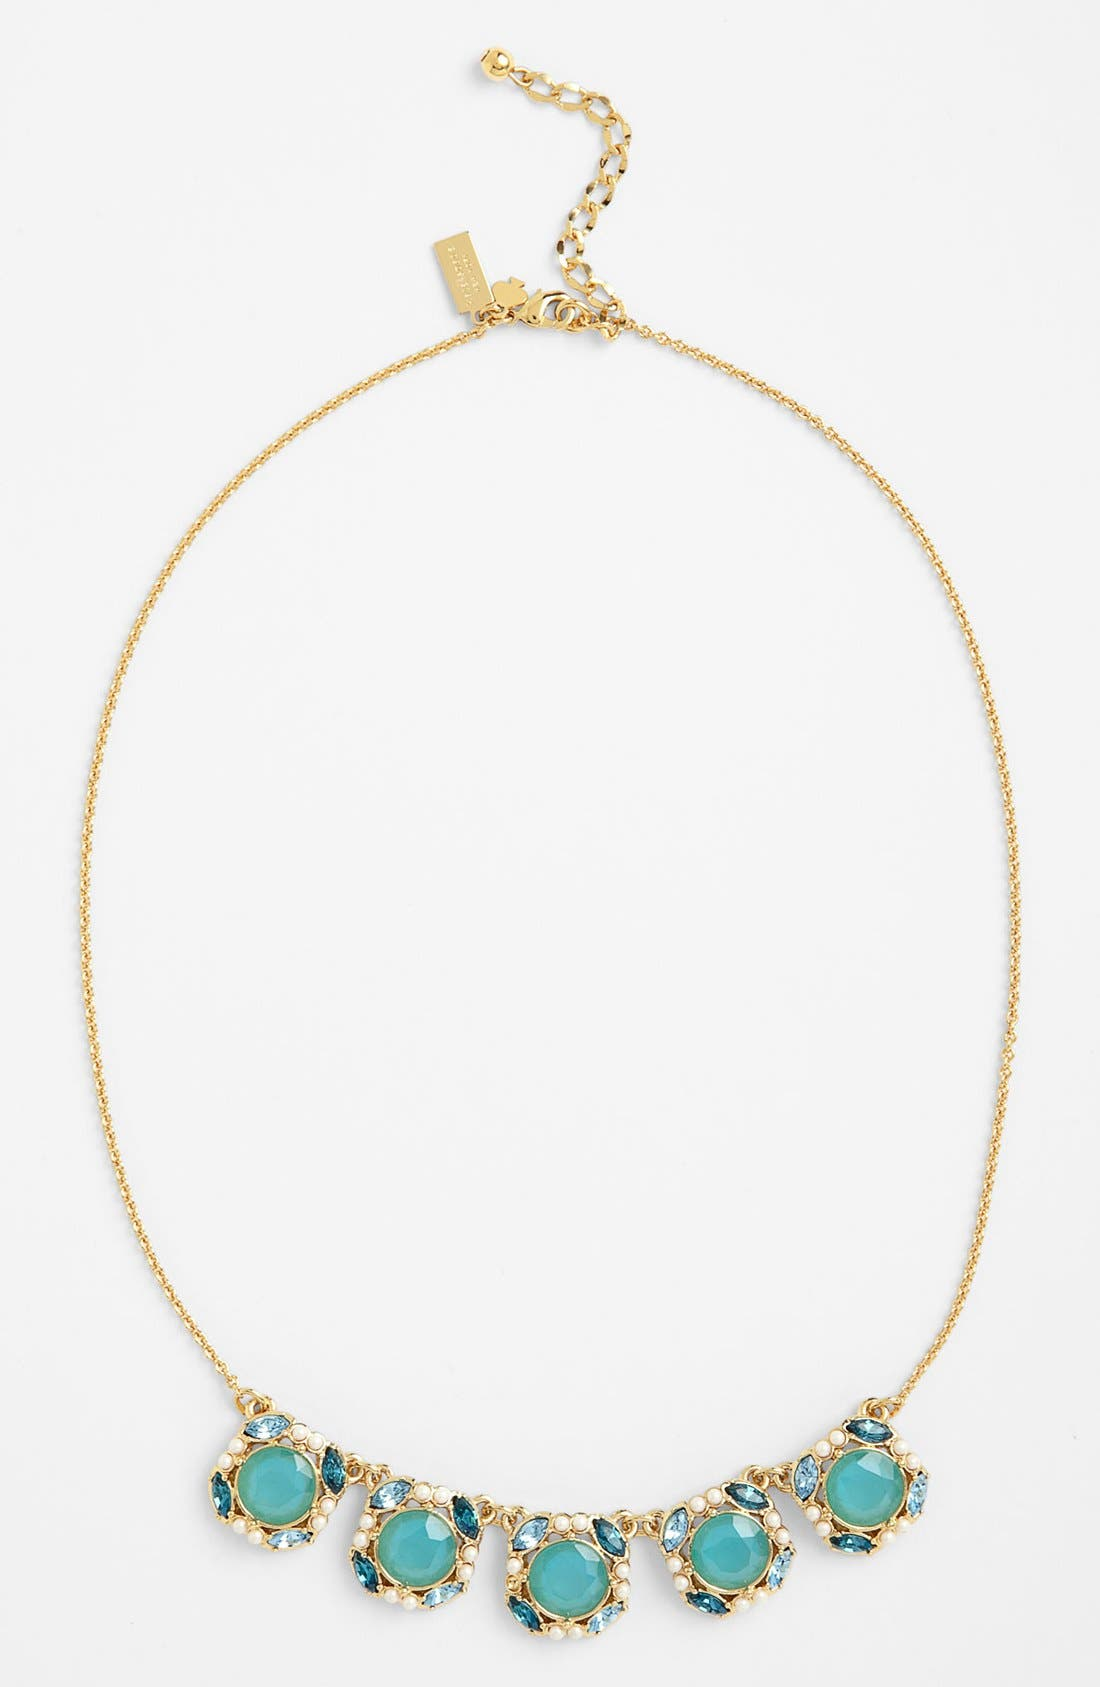 Alternate Image 1 Selected - kate spade new york 'belle fleur' frontal necklace